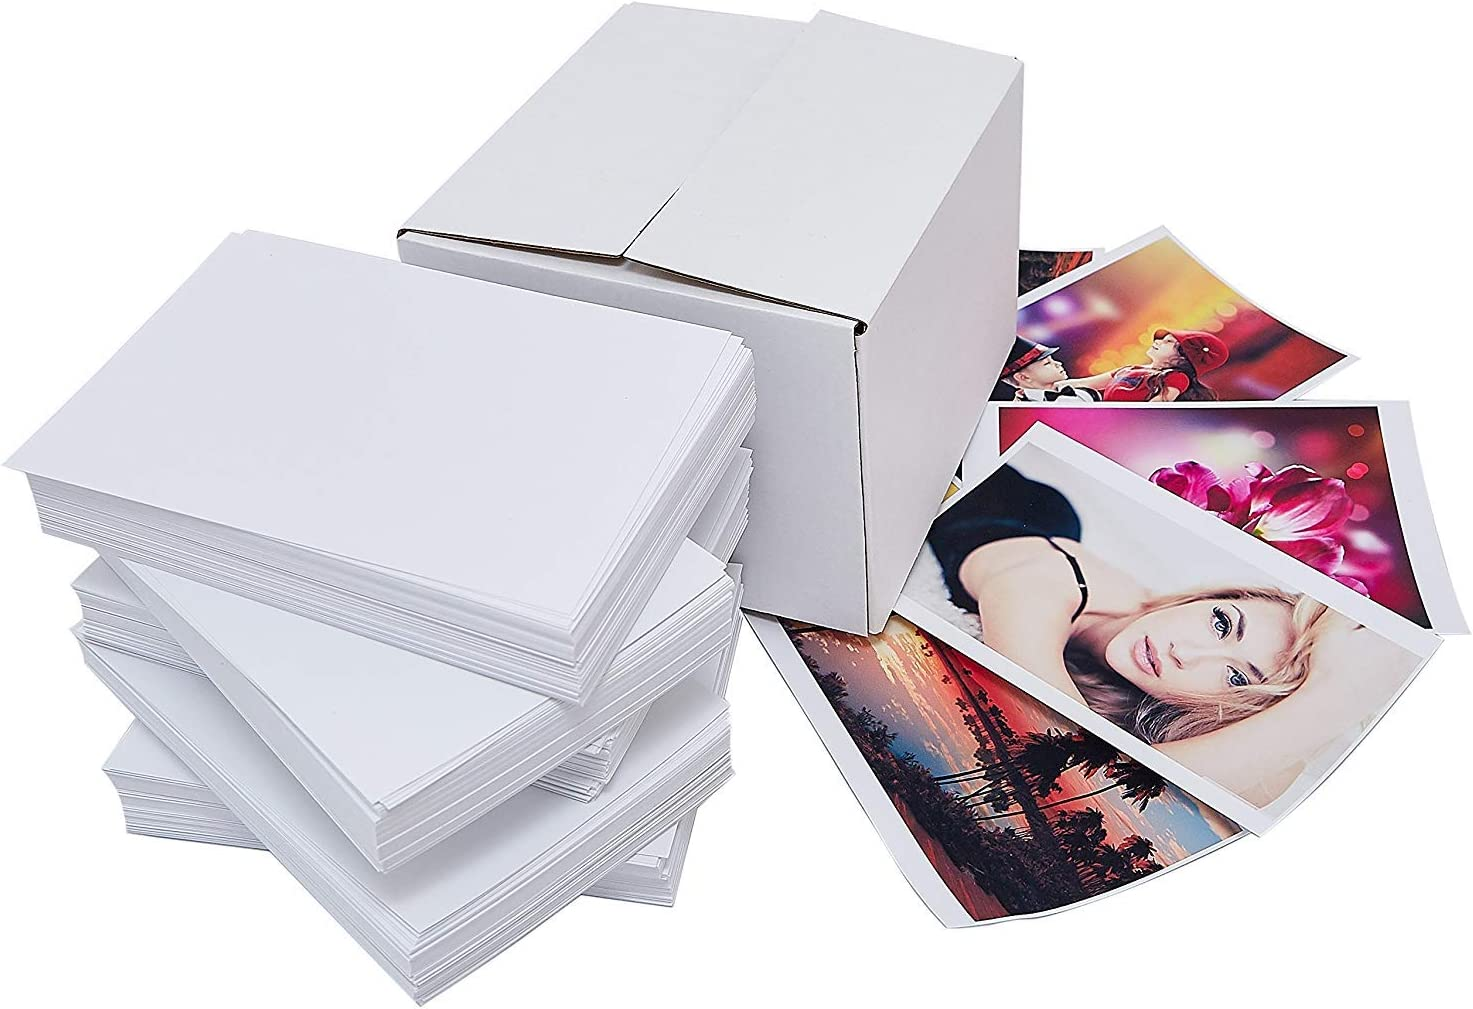 Printerry Glossy Photo Paper 4 x 6 Inches (500 Sheets) 60lbs / 230gsm